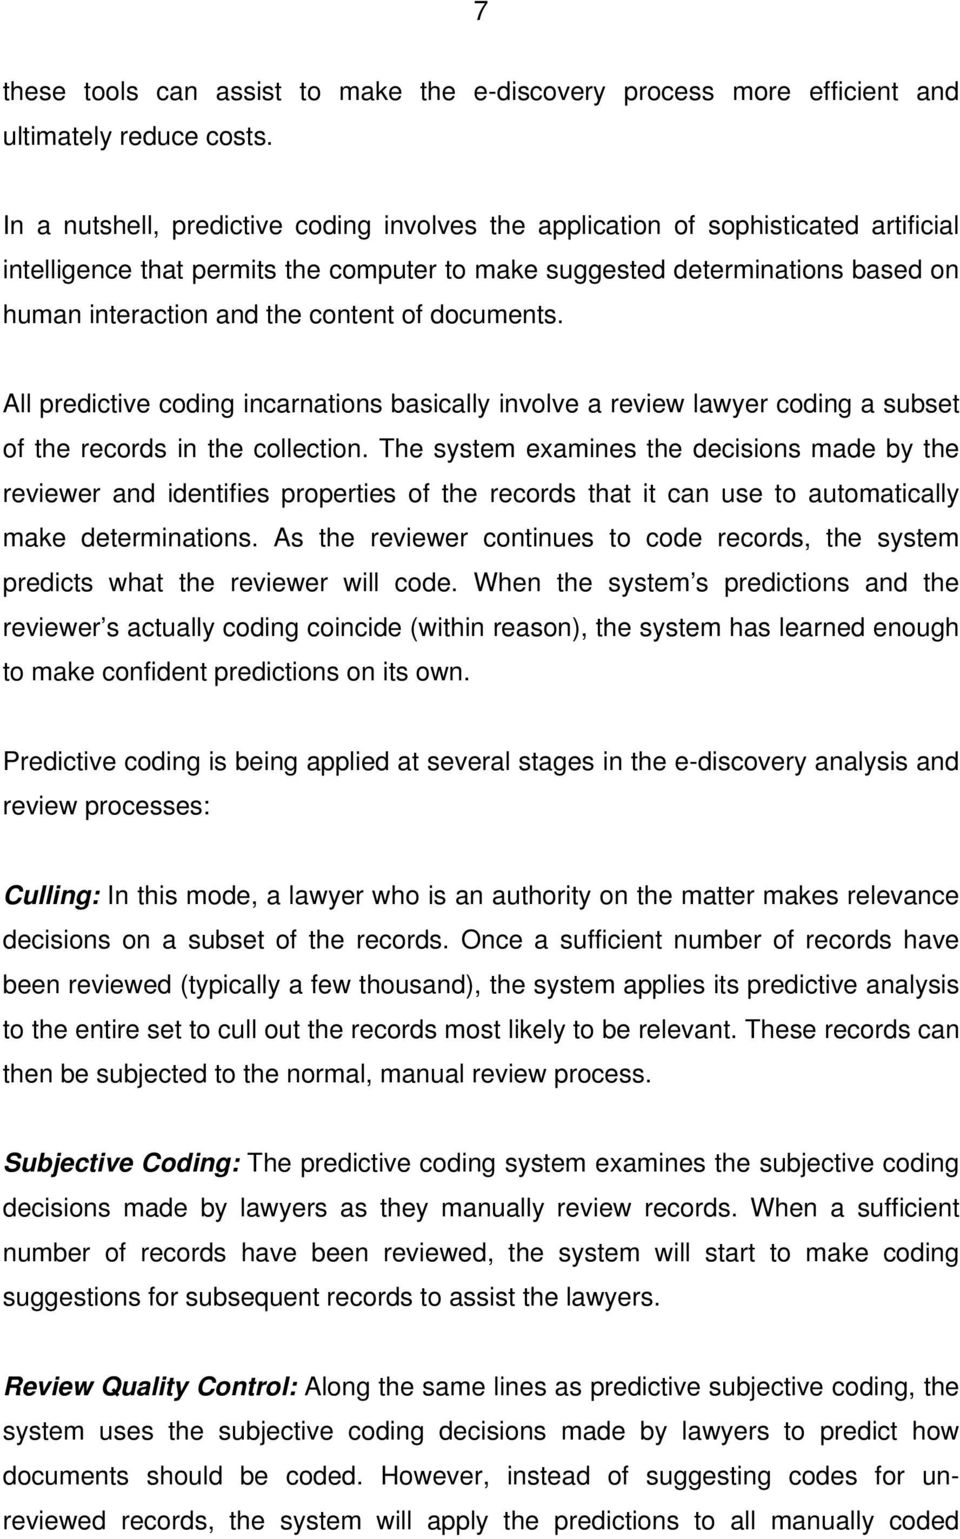 content of documents. All predictive coding incarnations basically involve a review lawyer coding a subset of the records in the collection.